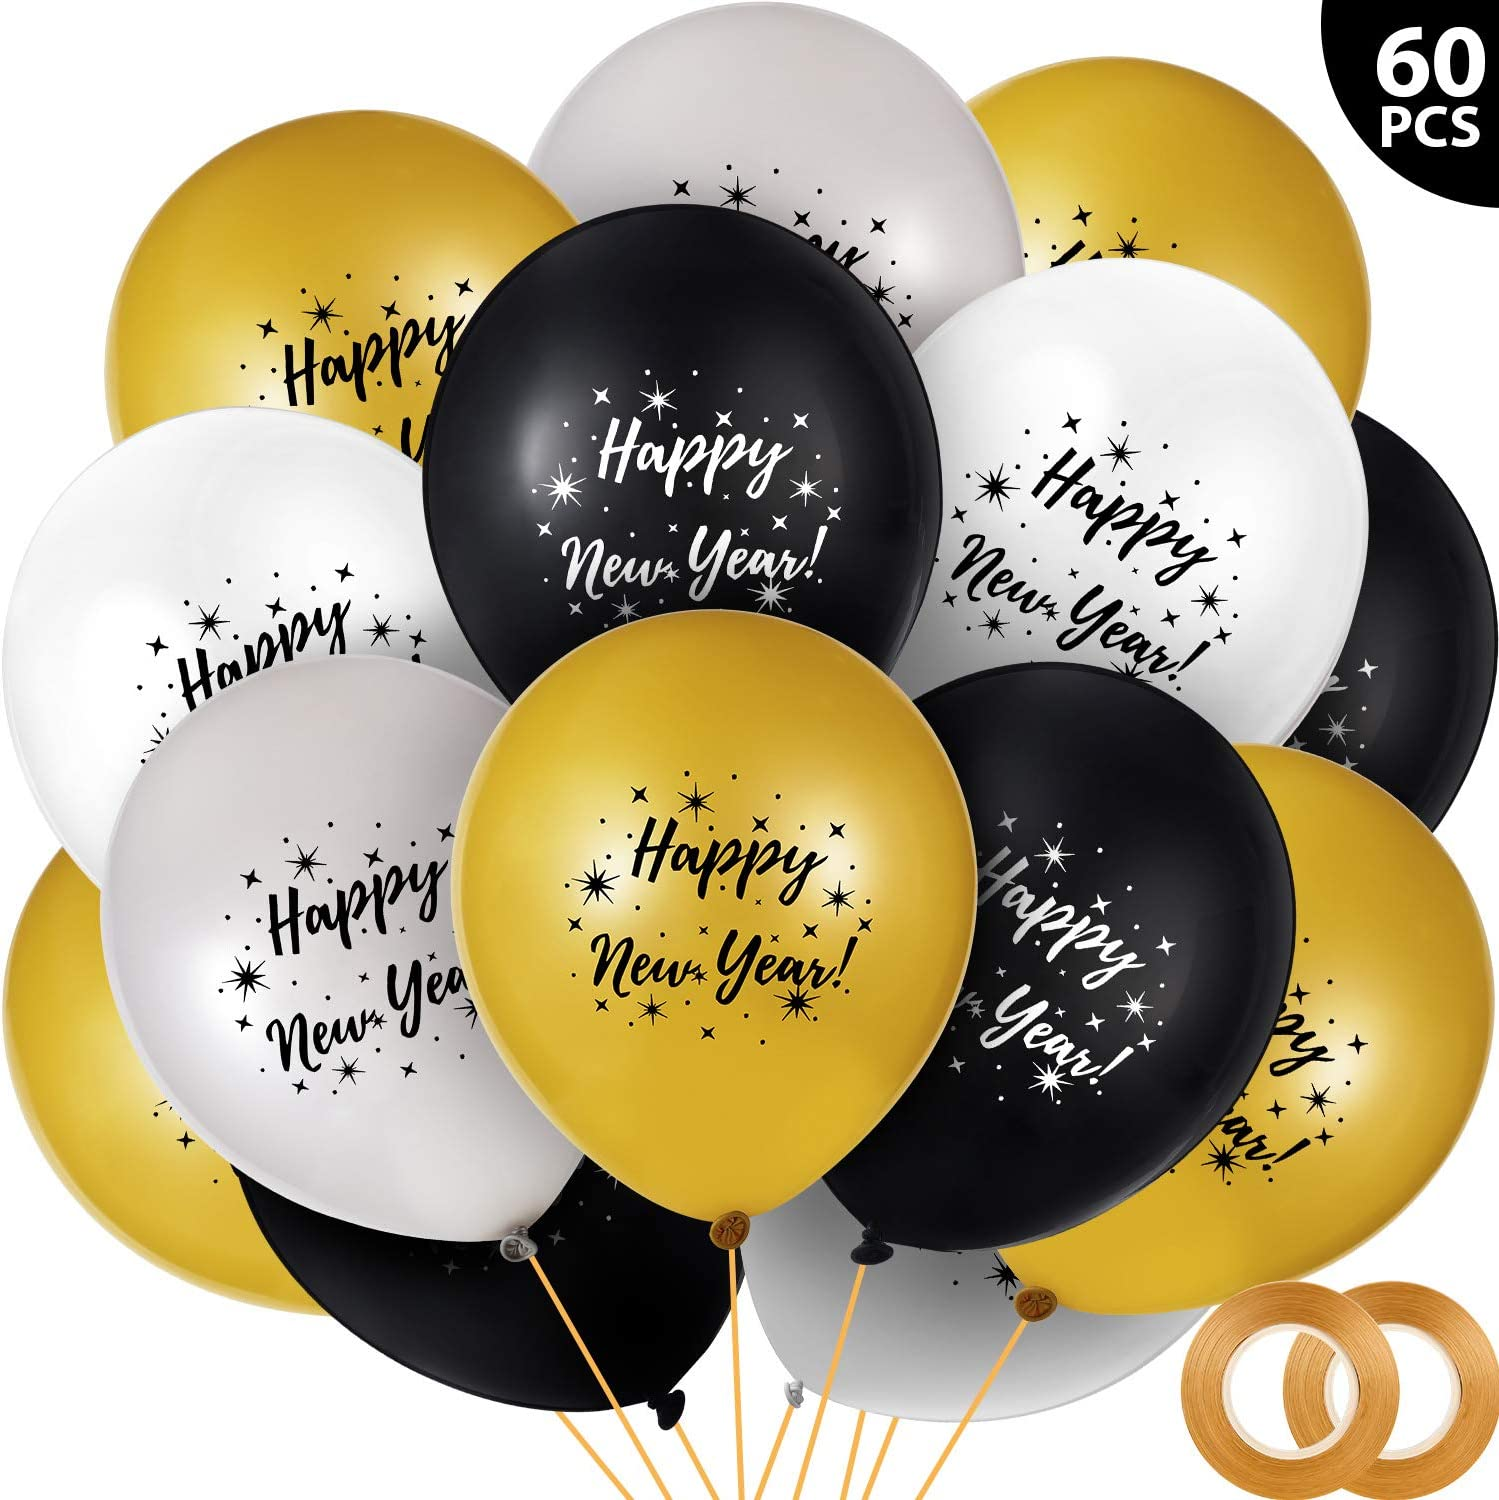 60 Pieces Happy New Year Balloons Colorful Latex Balloon 2020 New Year Balloon with 2 Roll Gold Ribbons for New Years Eve Party